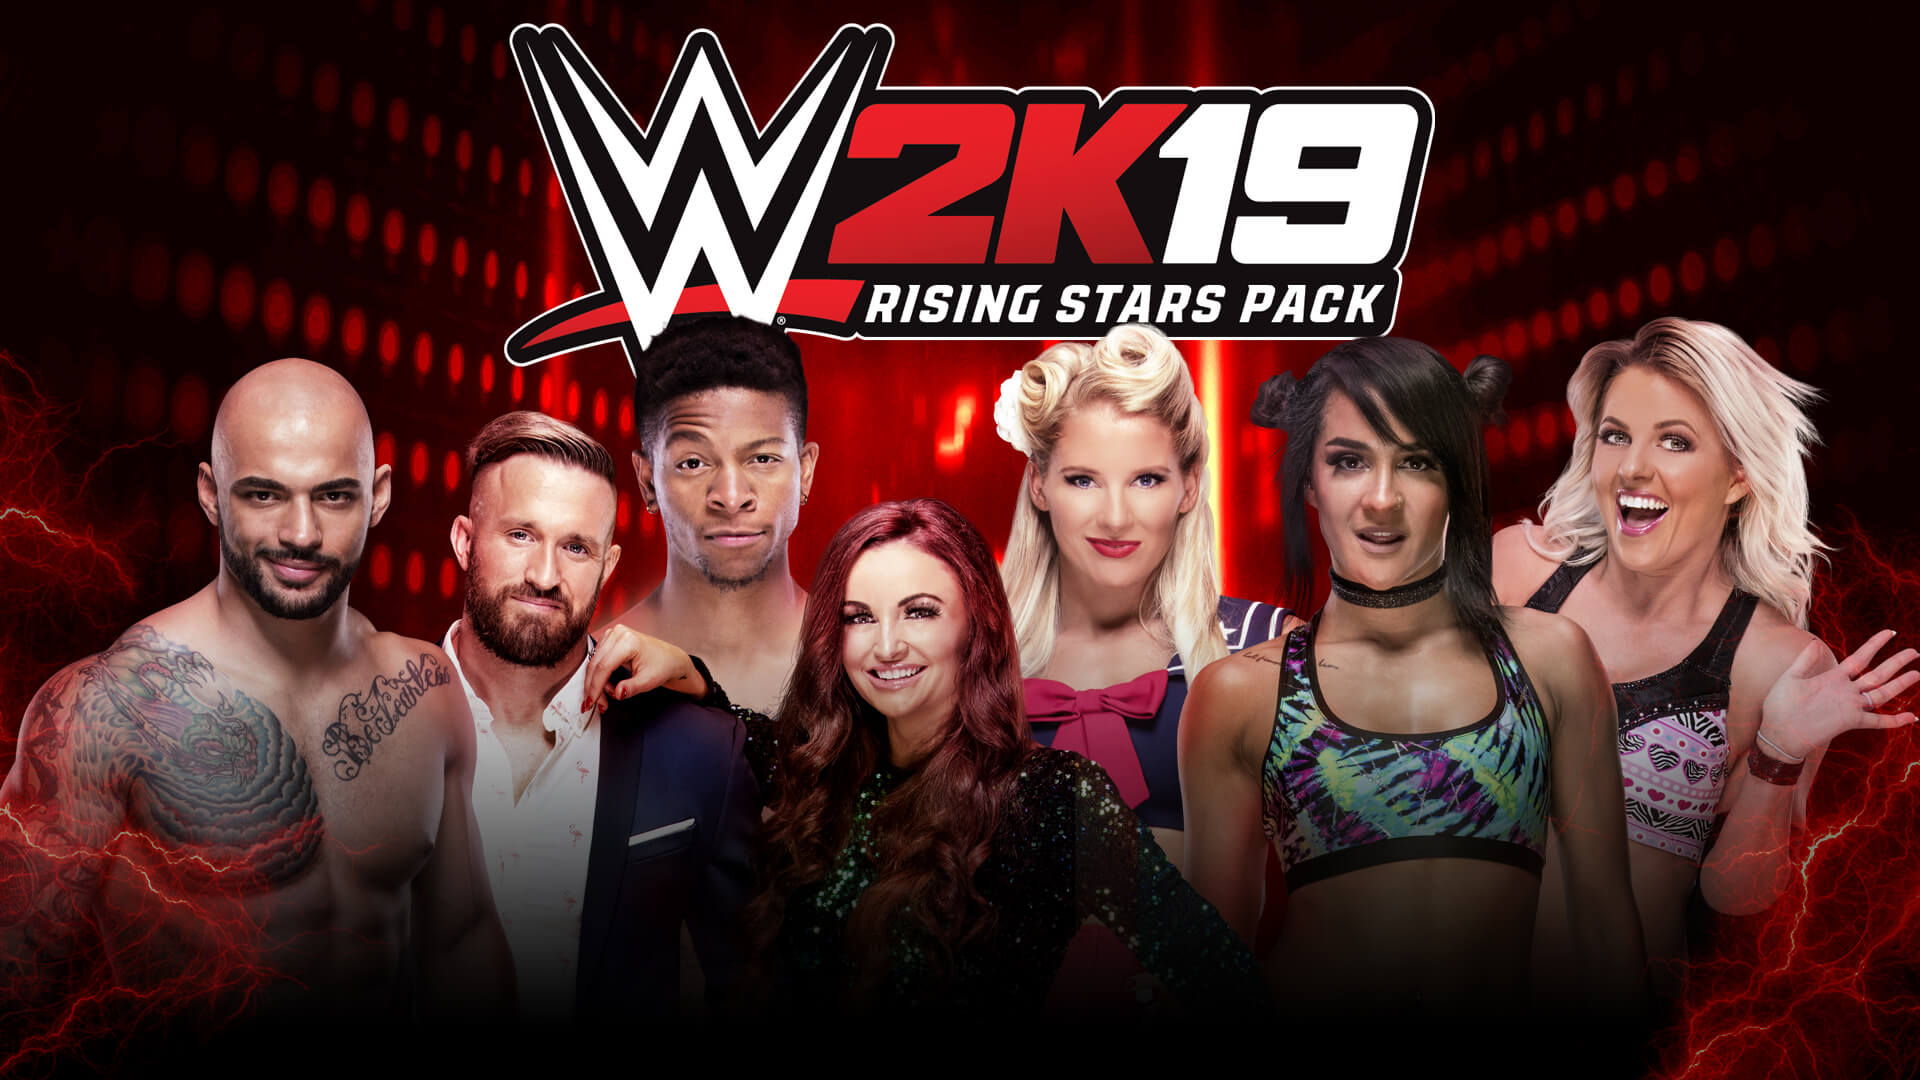 WWE's Rising Stars come to WWE 2K19 in the latest DLC